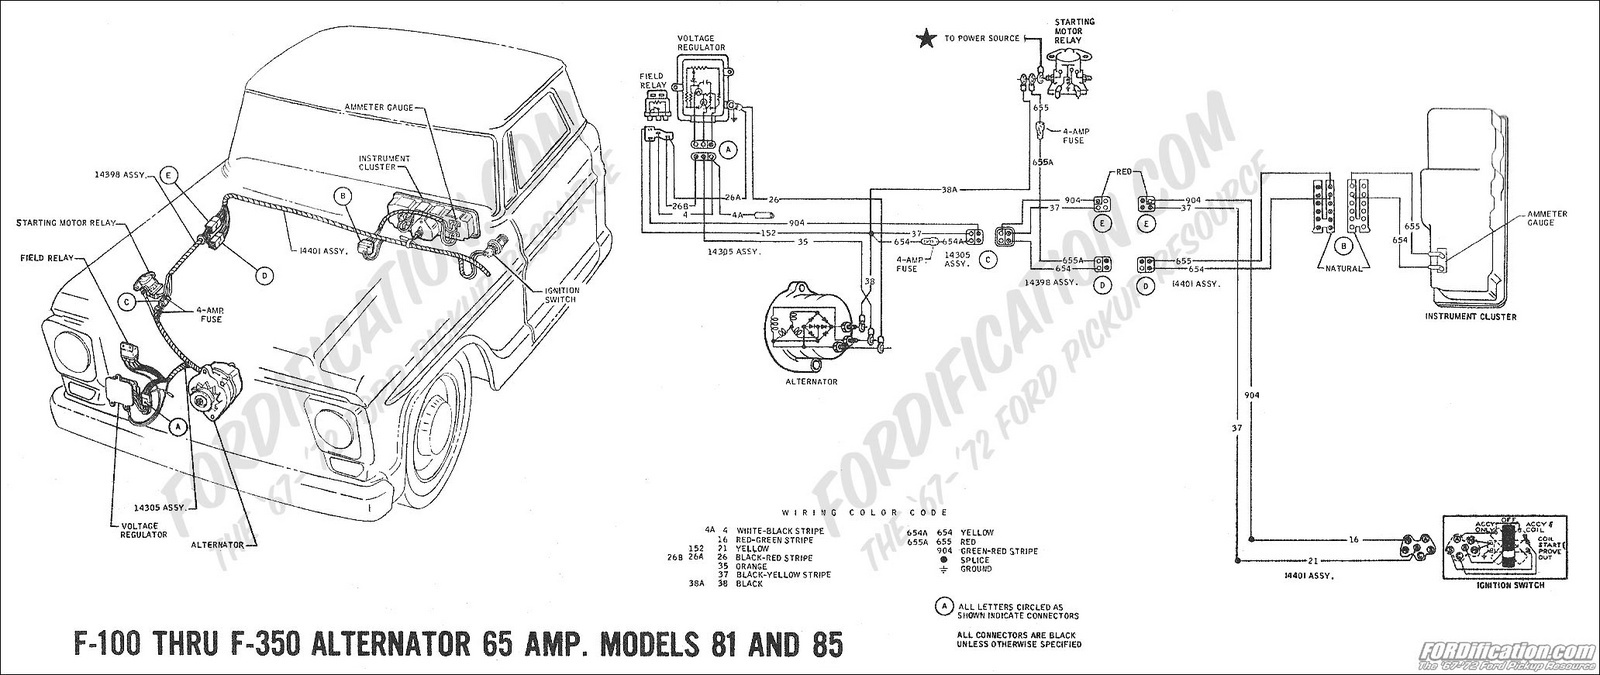 1985 Chevy Truck Power Window Wiring Diagram in addition Chevy Neutral Safety Switch Location moreover Watch also 2010 Ford F 150 Transmission Dipstick Location furthermore Watch. on ford f 150 neutral safety switch